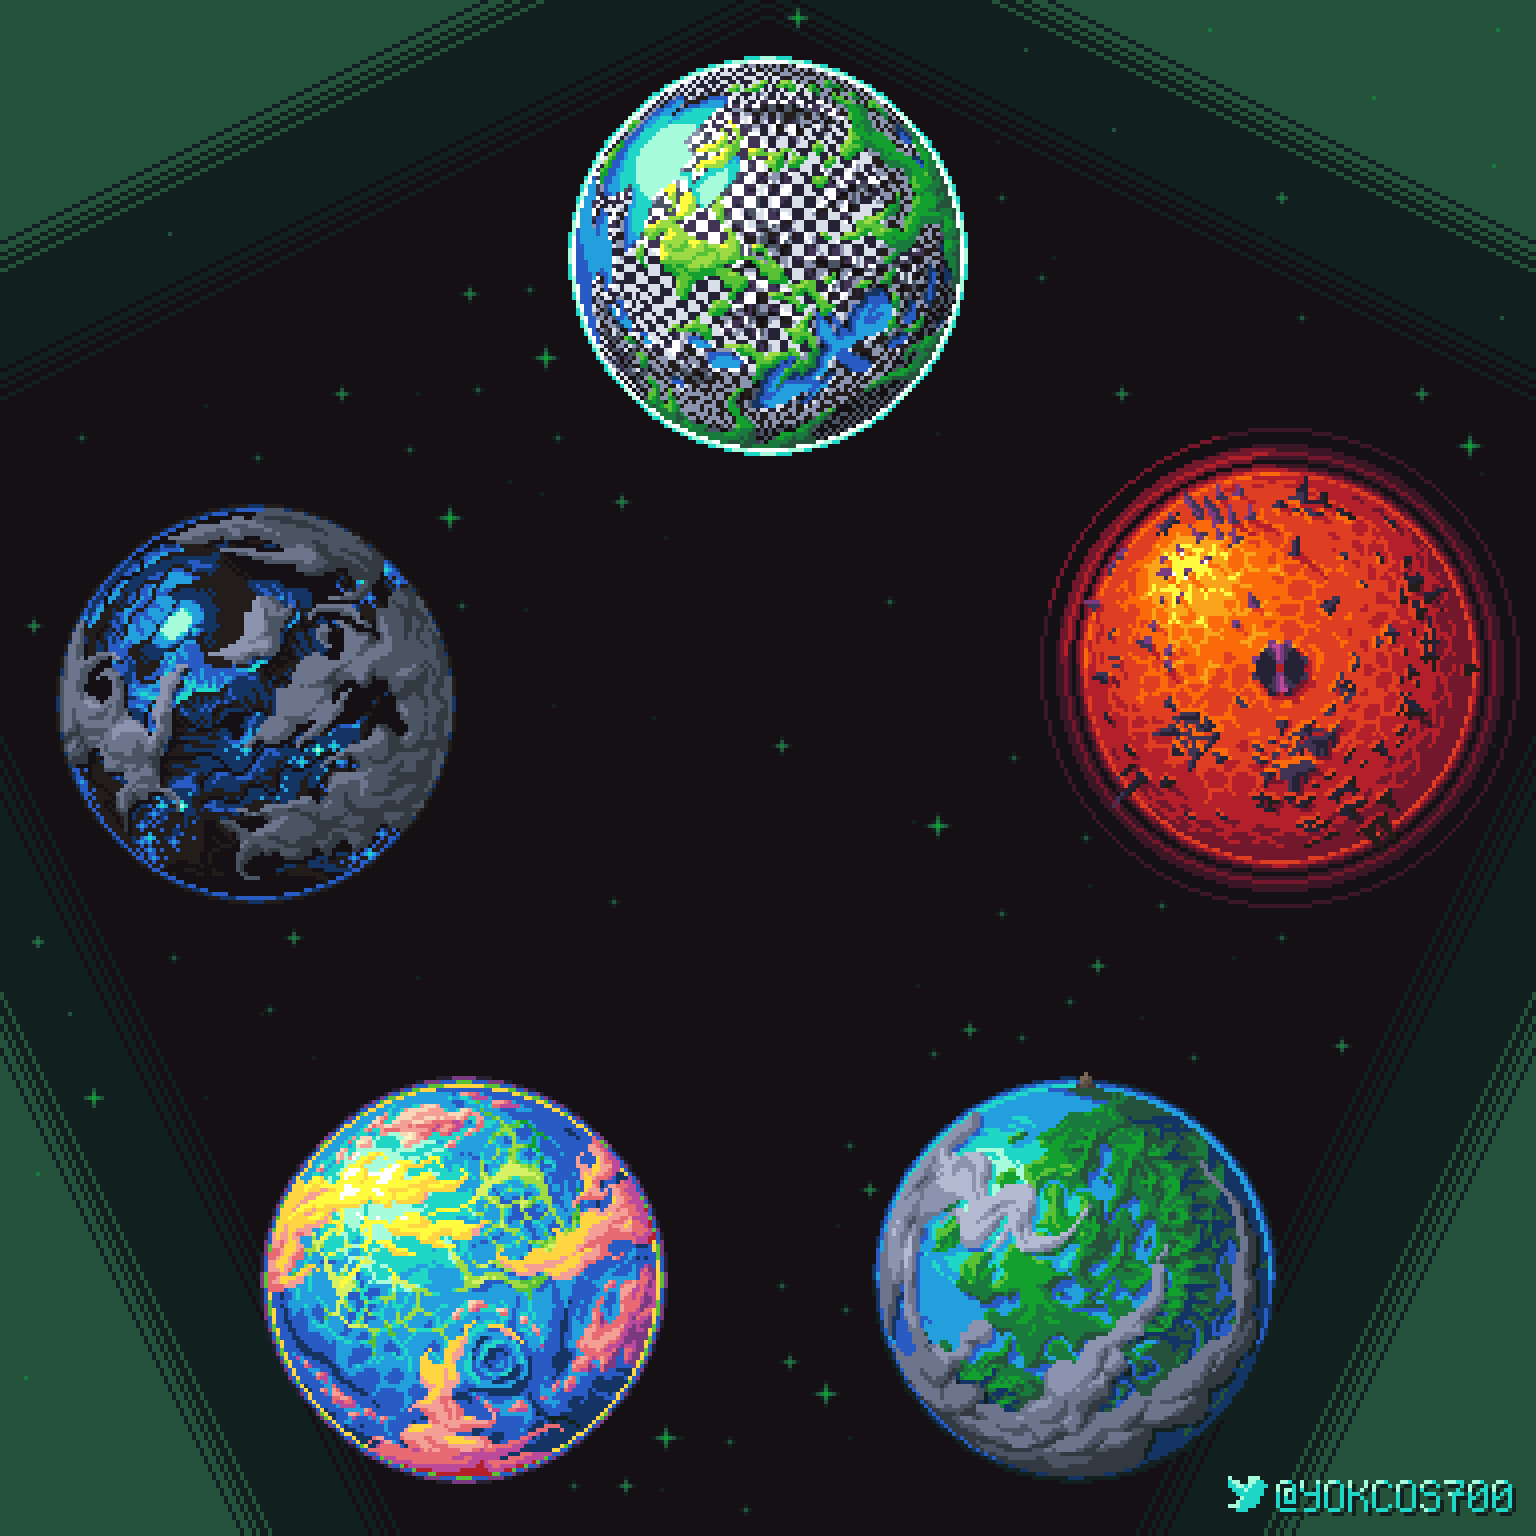 battlefield land_of_frost_and_frogs land_of_heat_and_clockwork land_of_light_and_rain land_of_wind_and_shade pixel planets twitter yokcos700